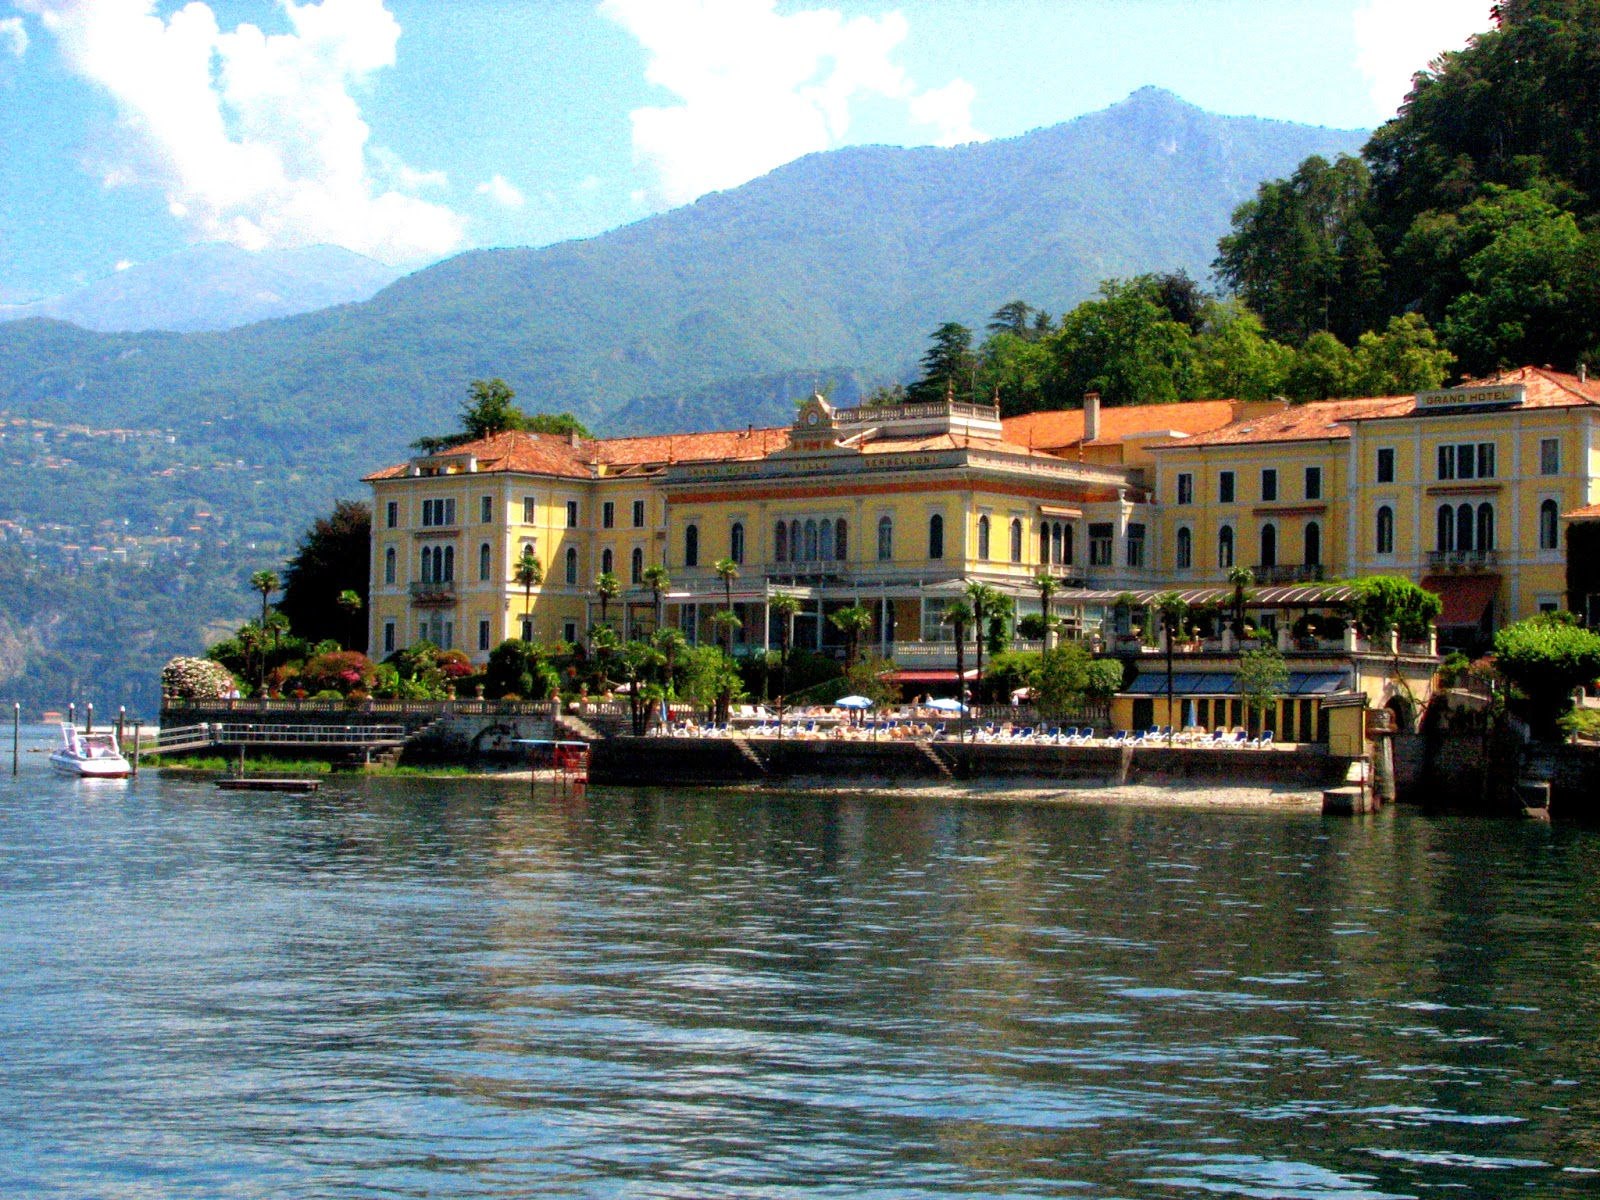 The big picture grand hotel villa serbelloni bellagio for Grand hotel